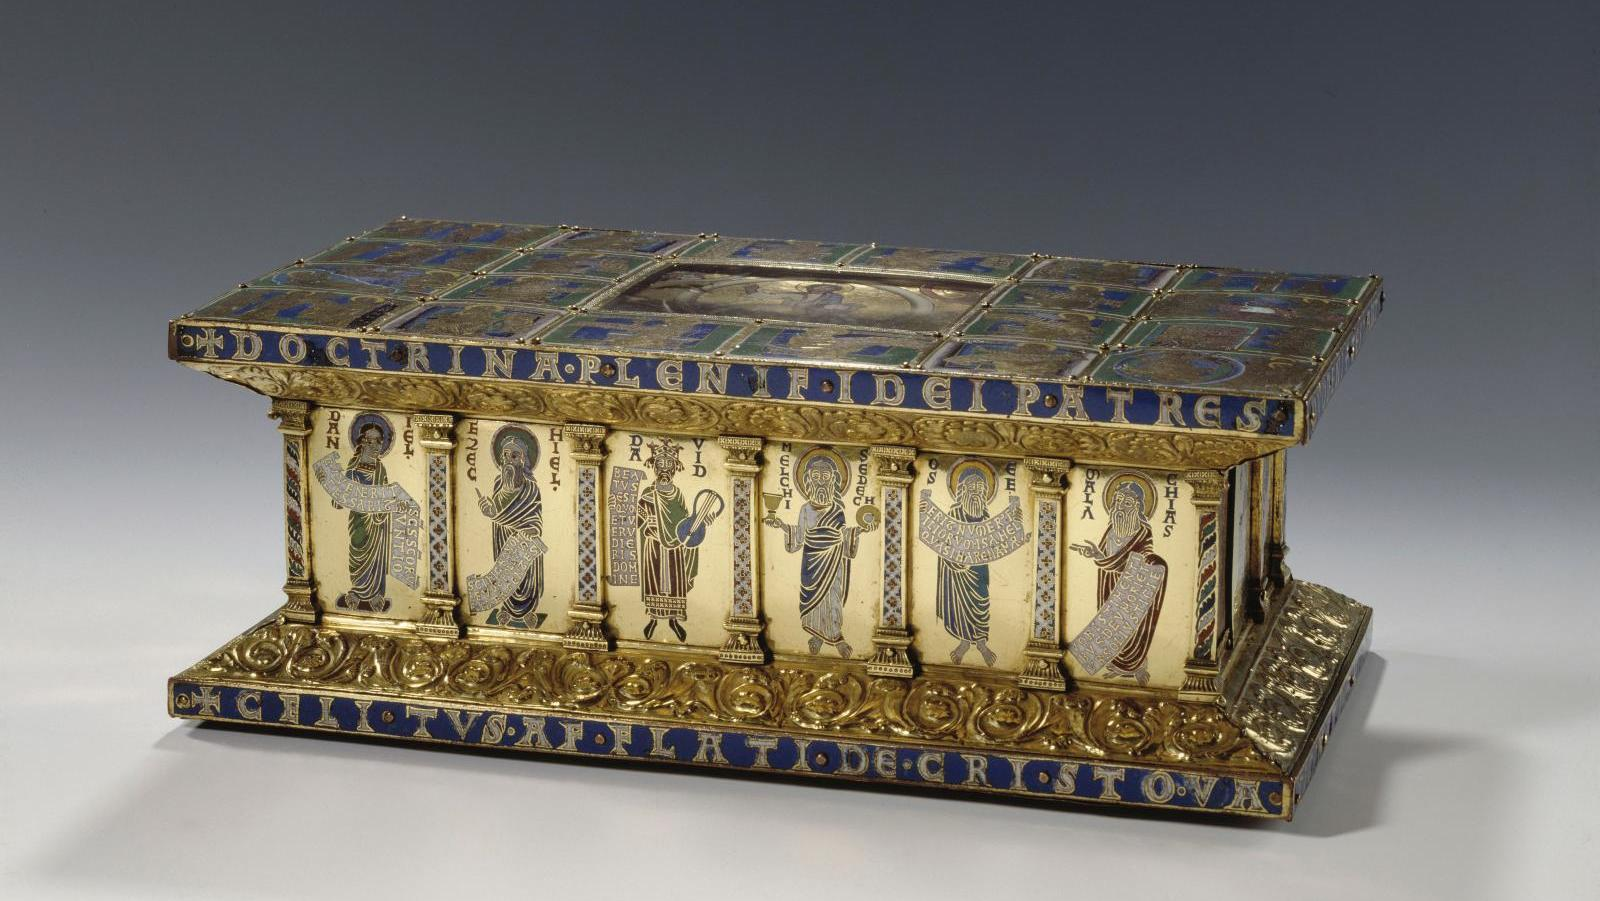 Guelph Treasure : reliquary from the Brunswick Cathedral in Braunschweig, Germany. © Berlin Museums, Museum of Decorative Arts / Jürgen Liepe